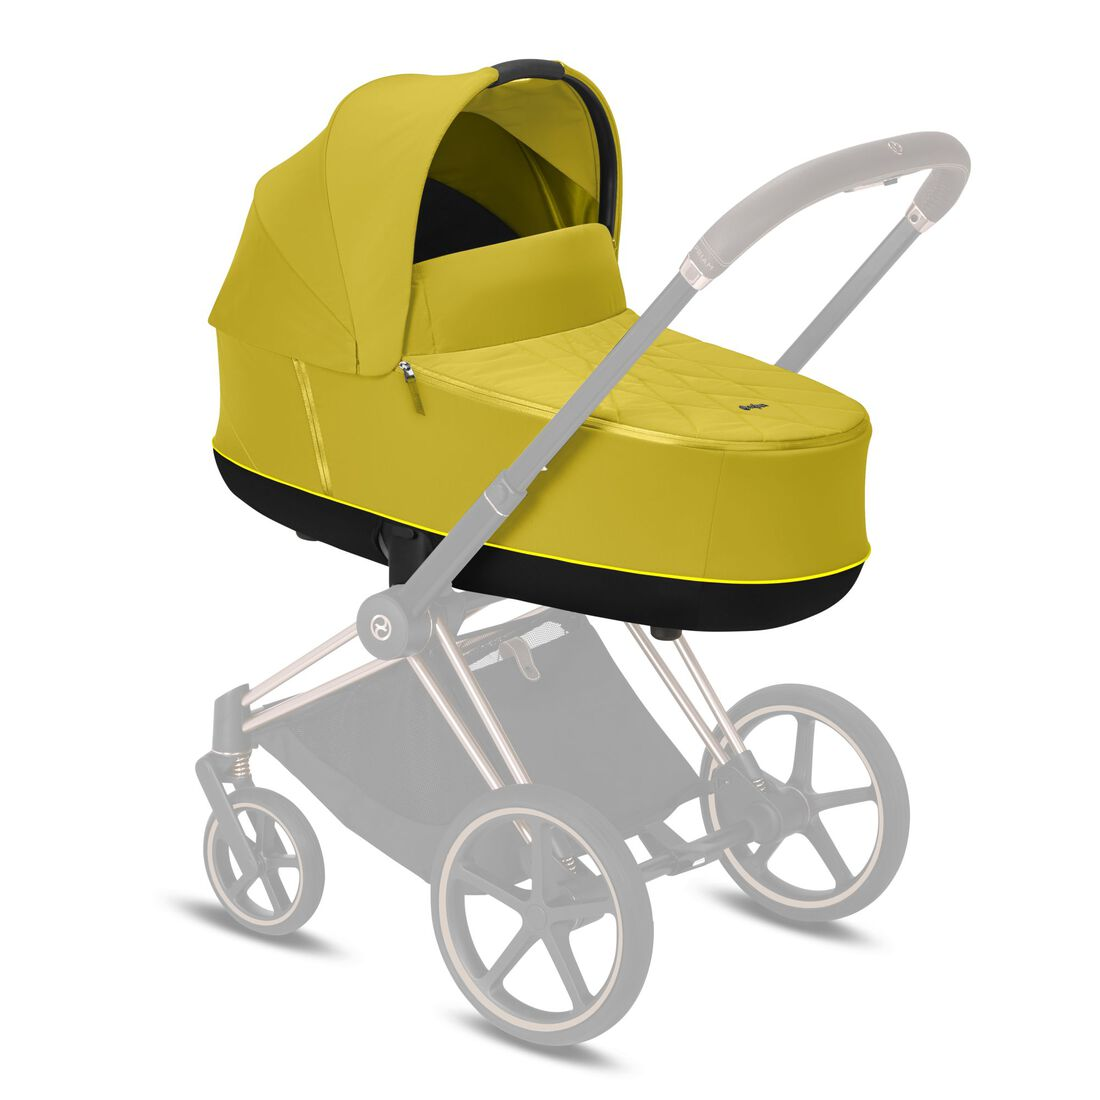 CYBEX Priam Lux Carry Cot - Mustard Yellow in Mustard Yellow large Bild 5